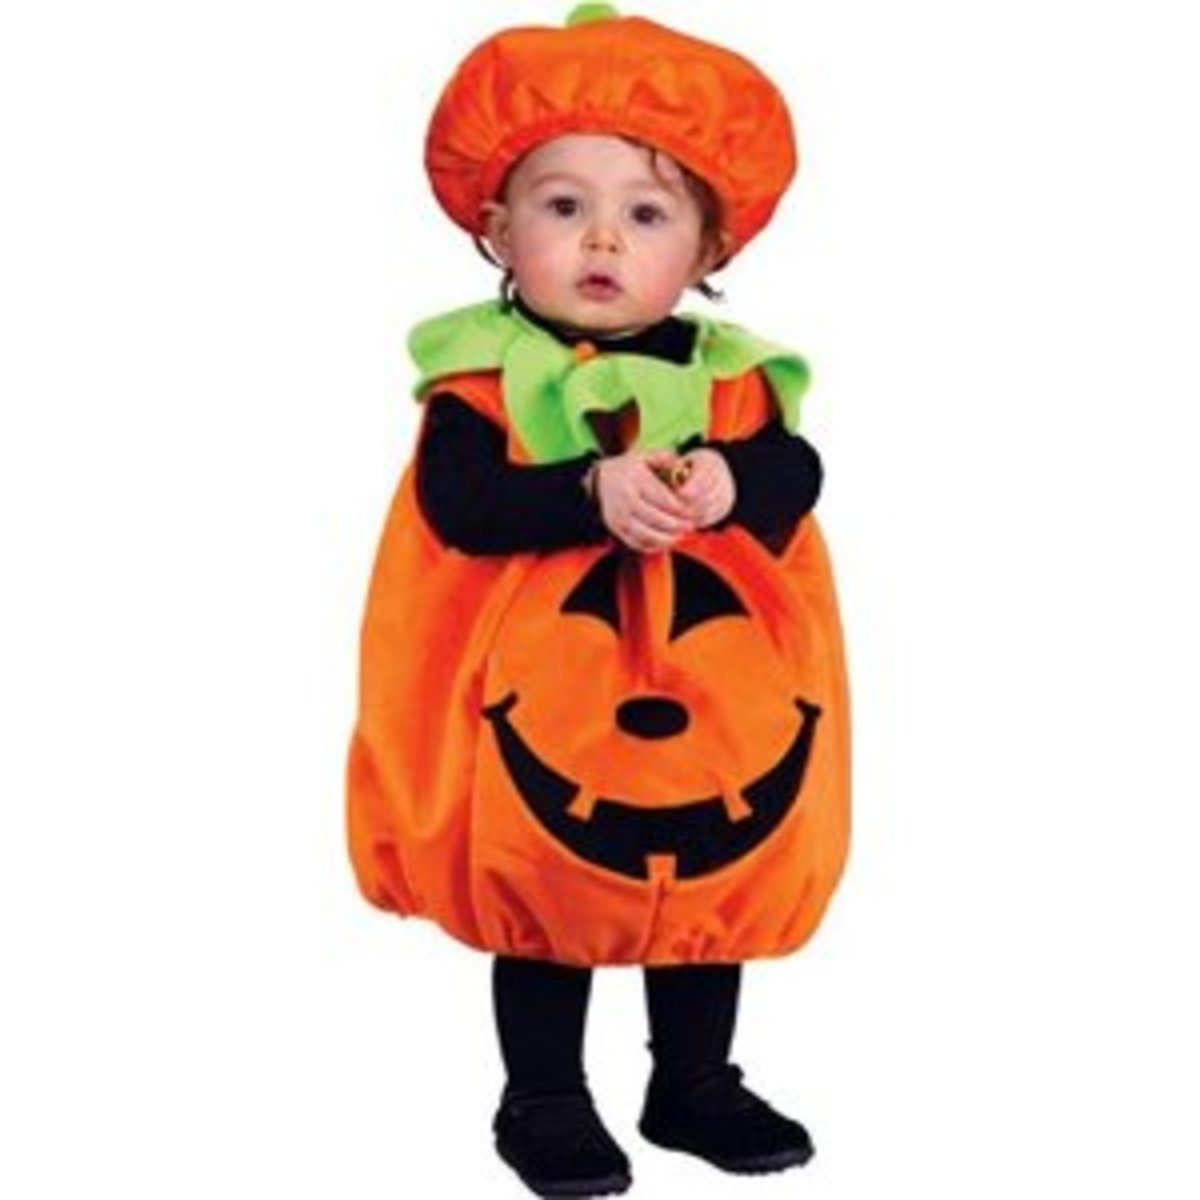 The pumpkin costume: a classic first Halloween outfit.